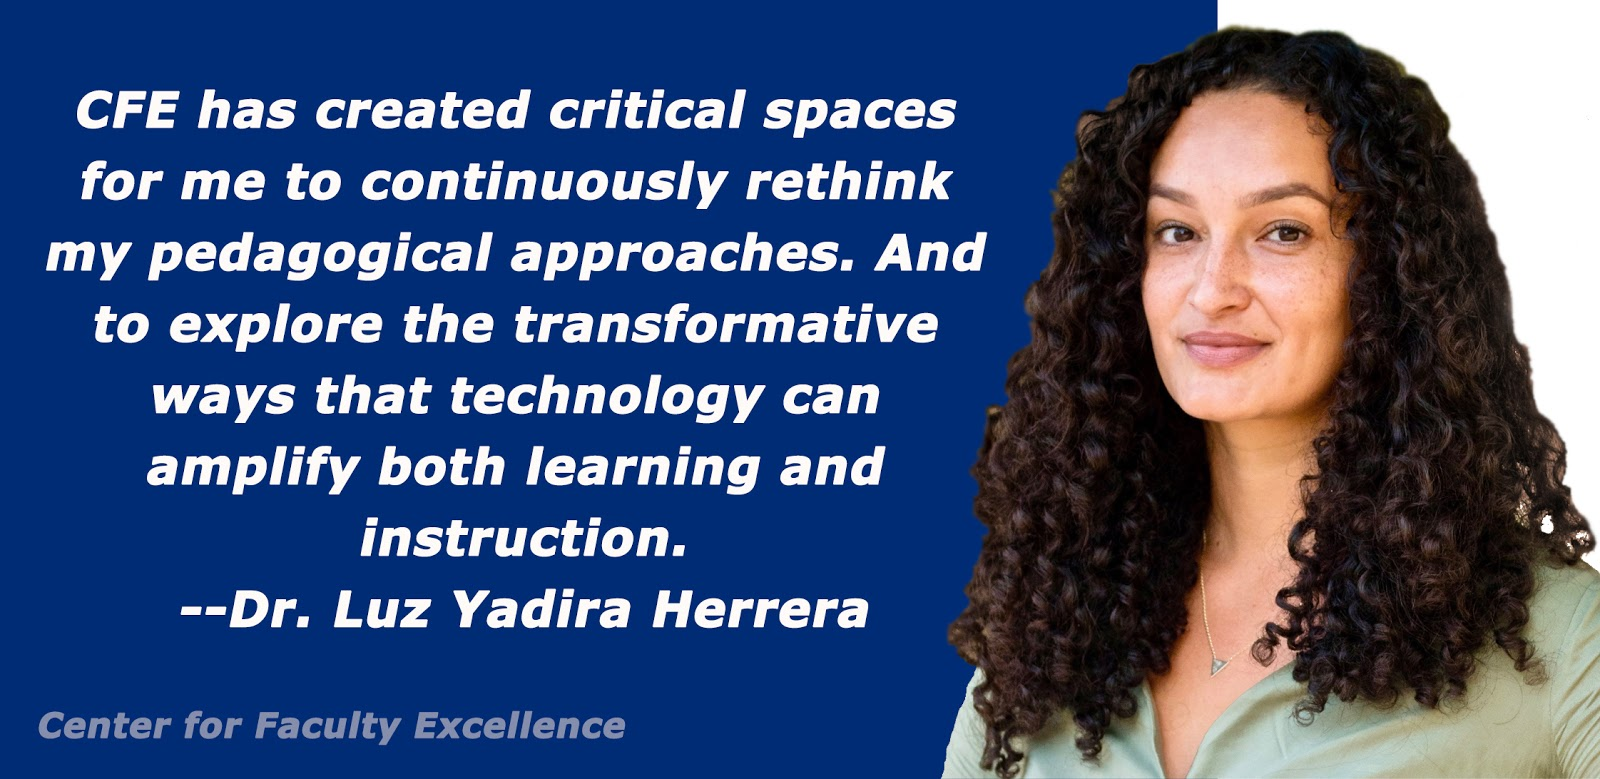 Decorative Image: CFE has created critical spaces for me to continuously rethink my pedagogical approaches. And to explore the transformative ways that technology can amplify both learning and instruction.